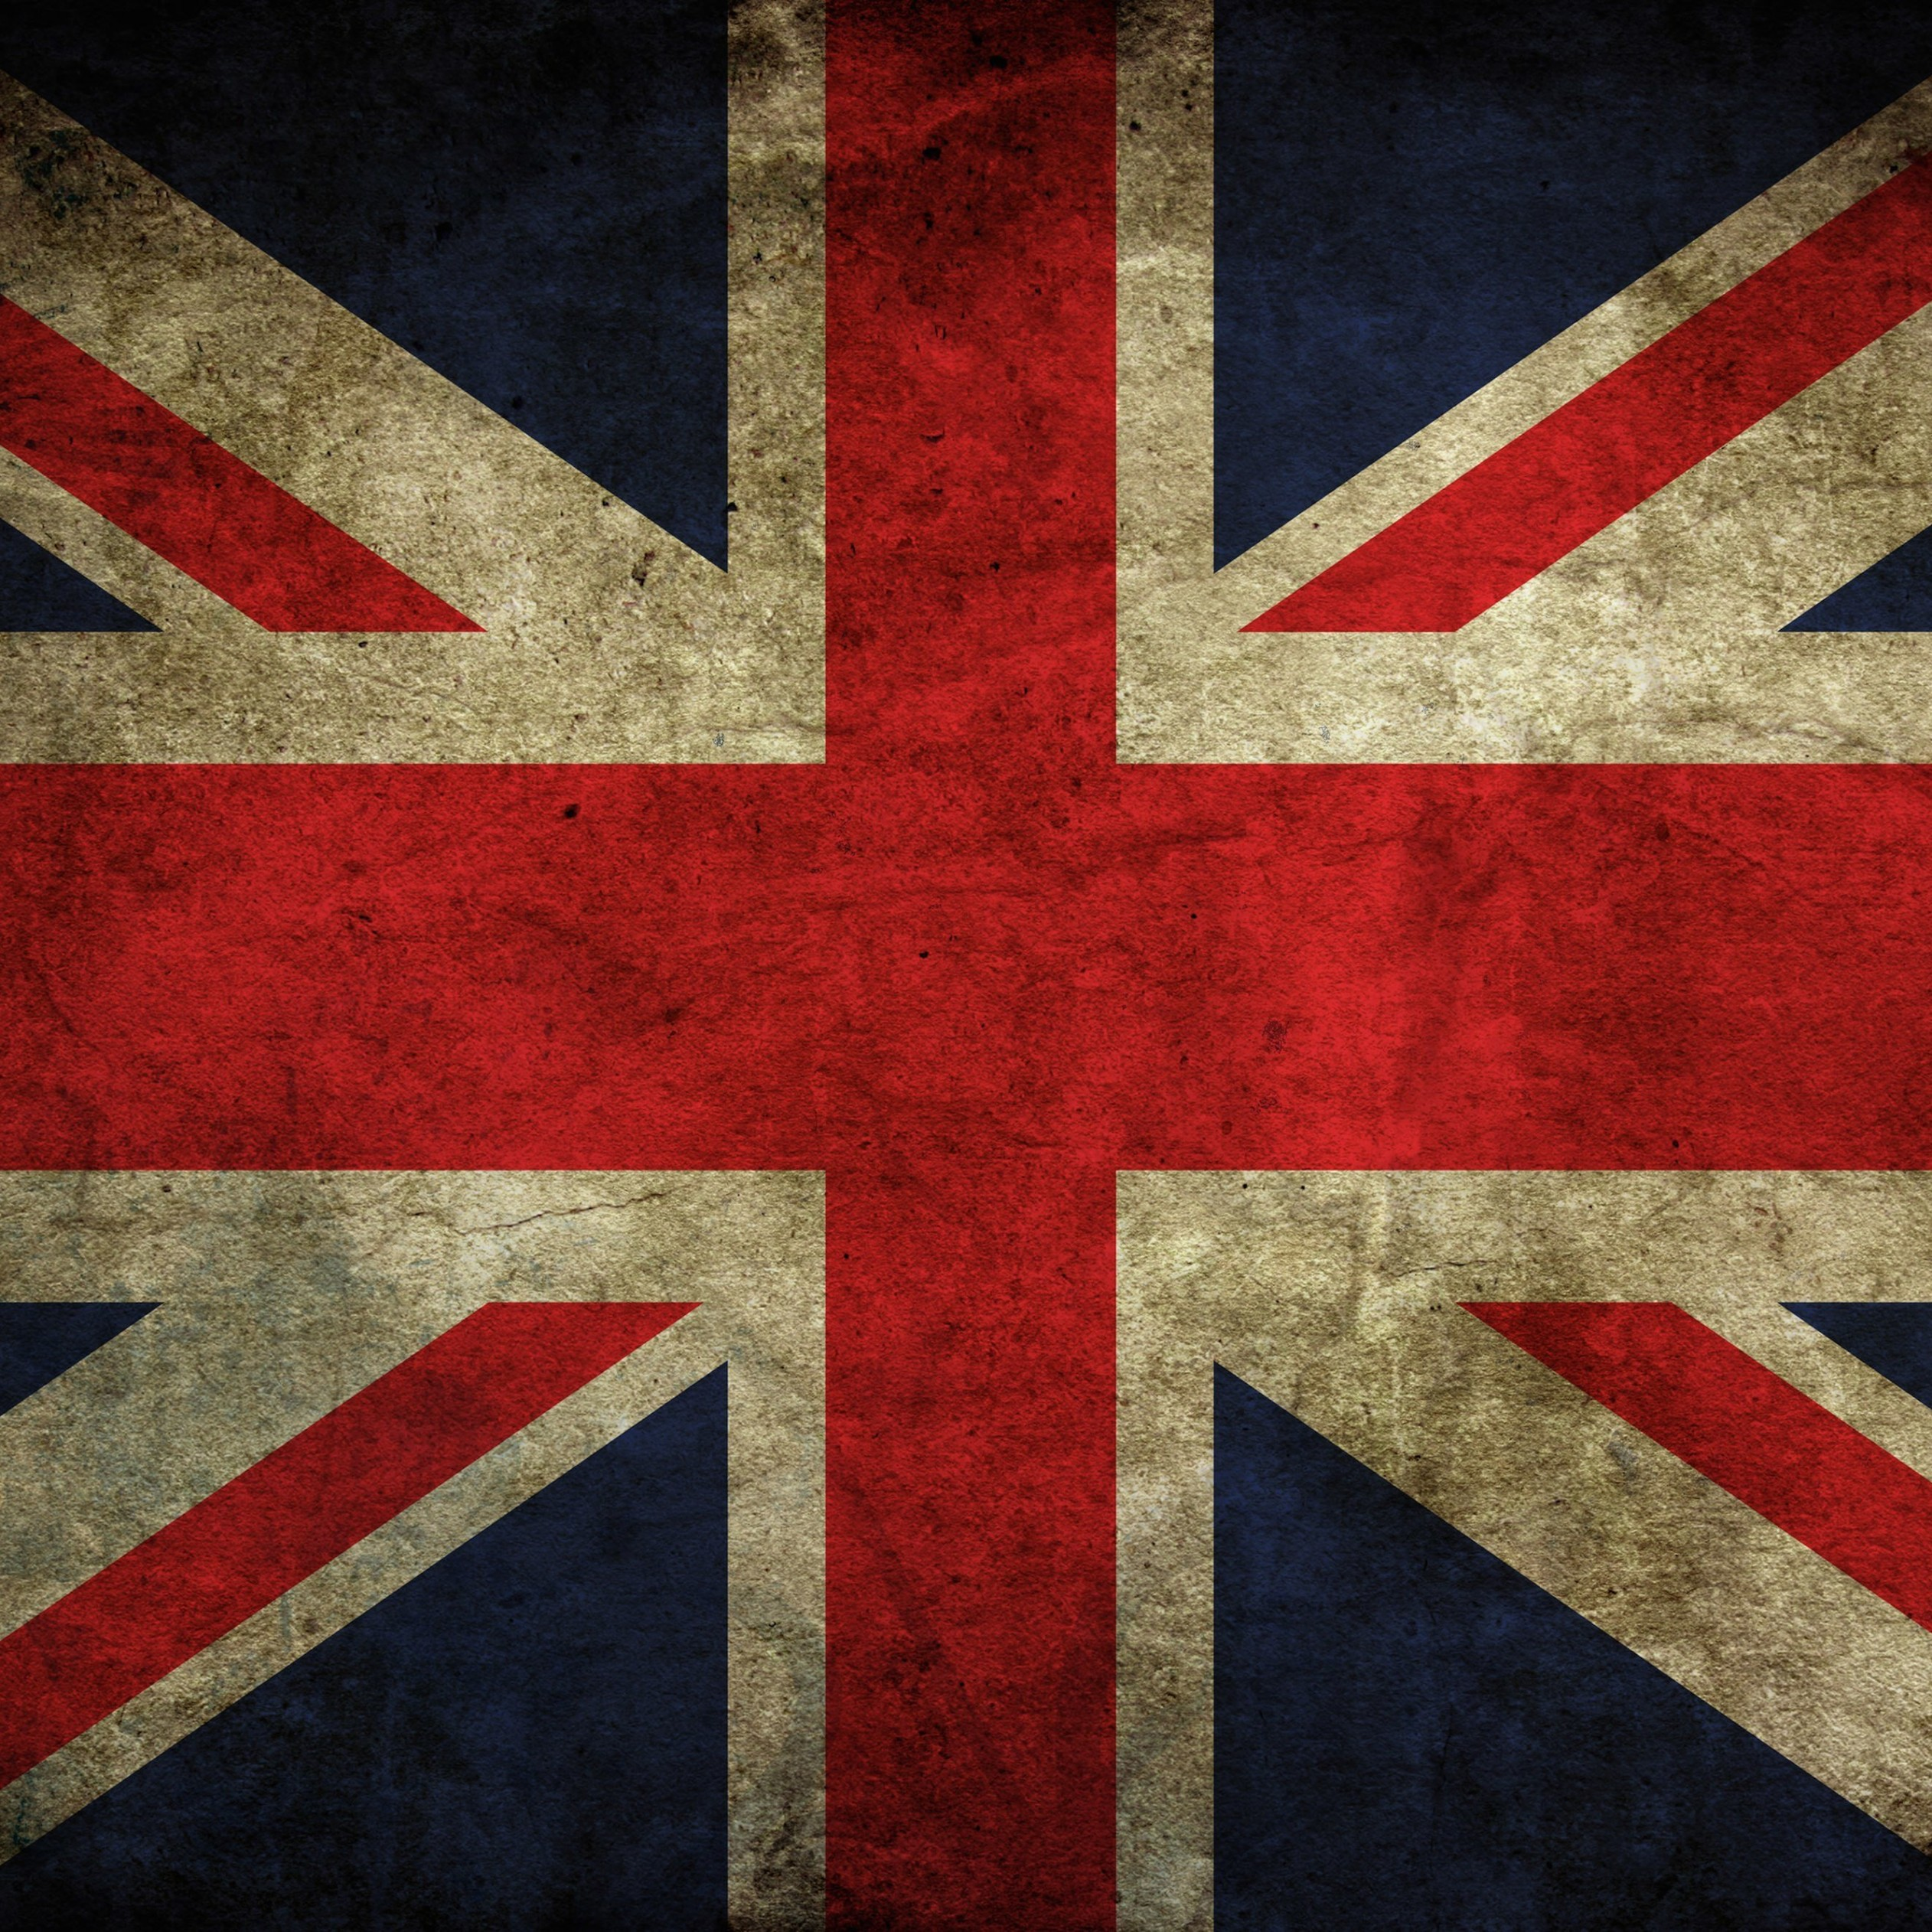 Grunge Flag Of The United Kingdom Wallpaper for Apple iPad Air